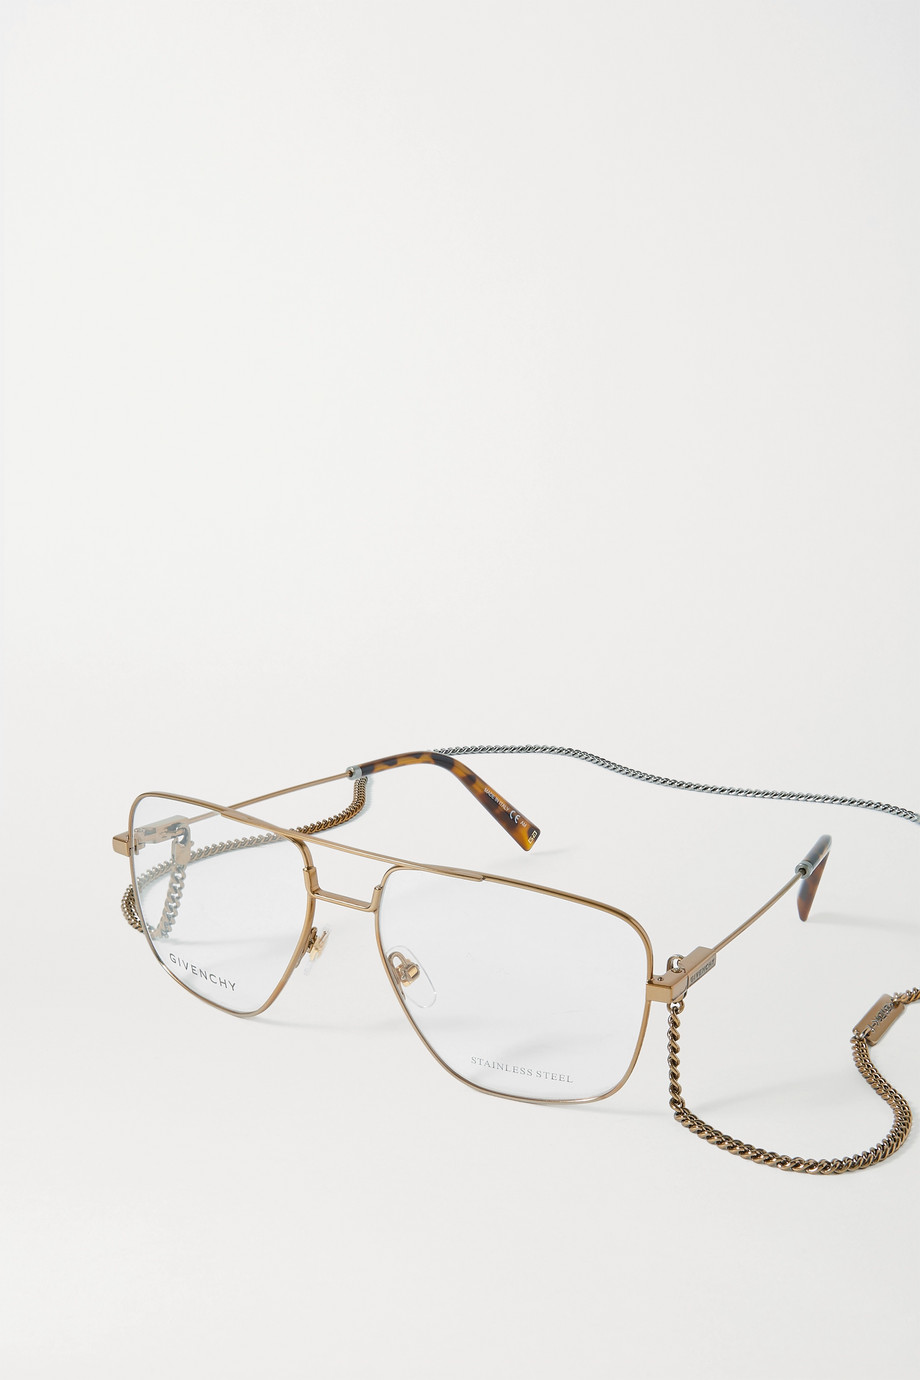 GIVENCHY Aviator-style gold-tone and tortoiseshell acetate optical glasses